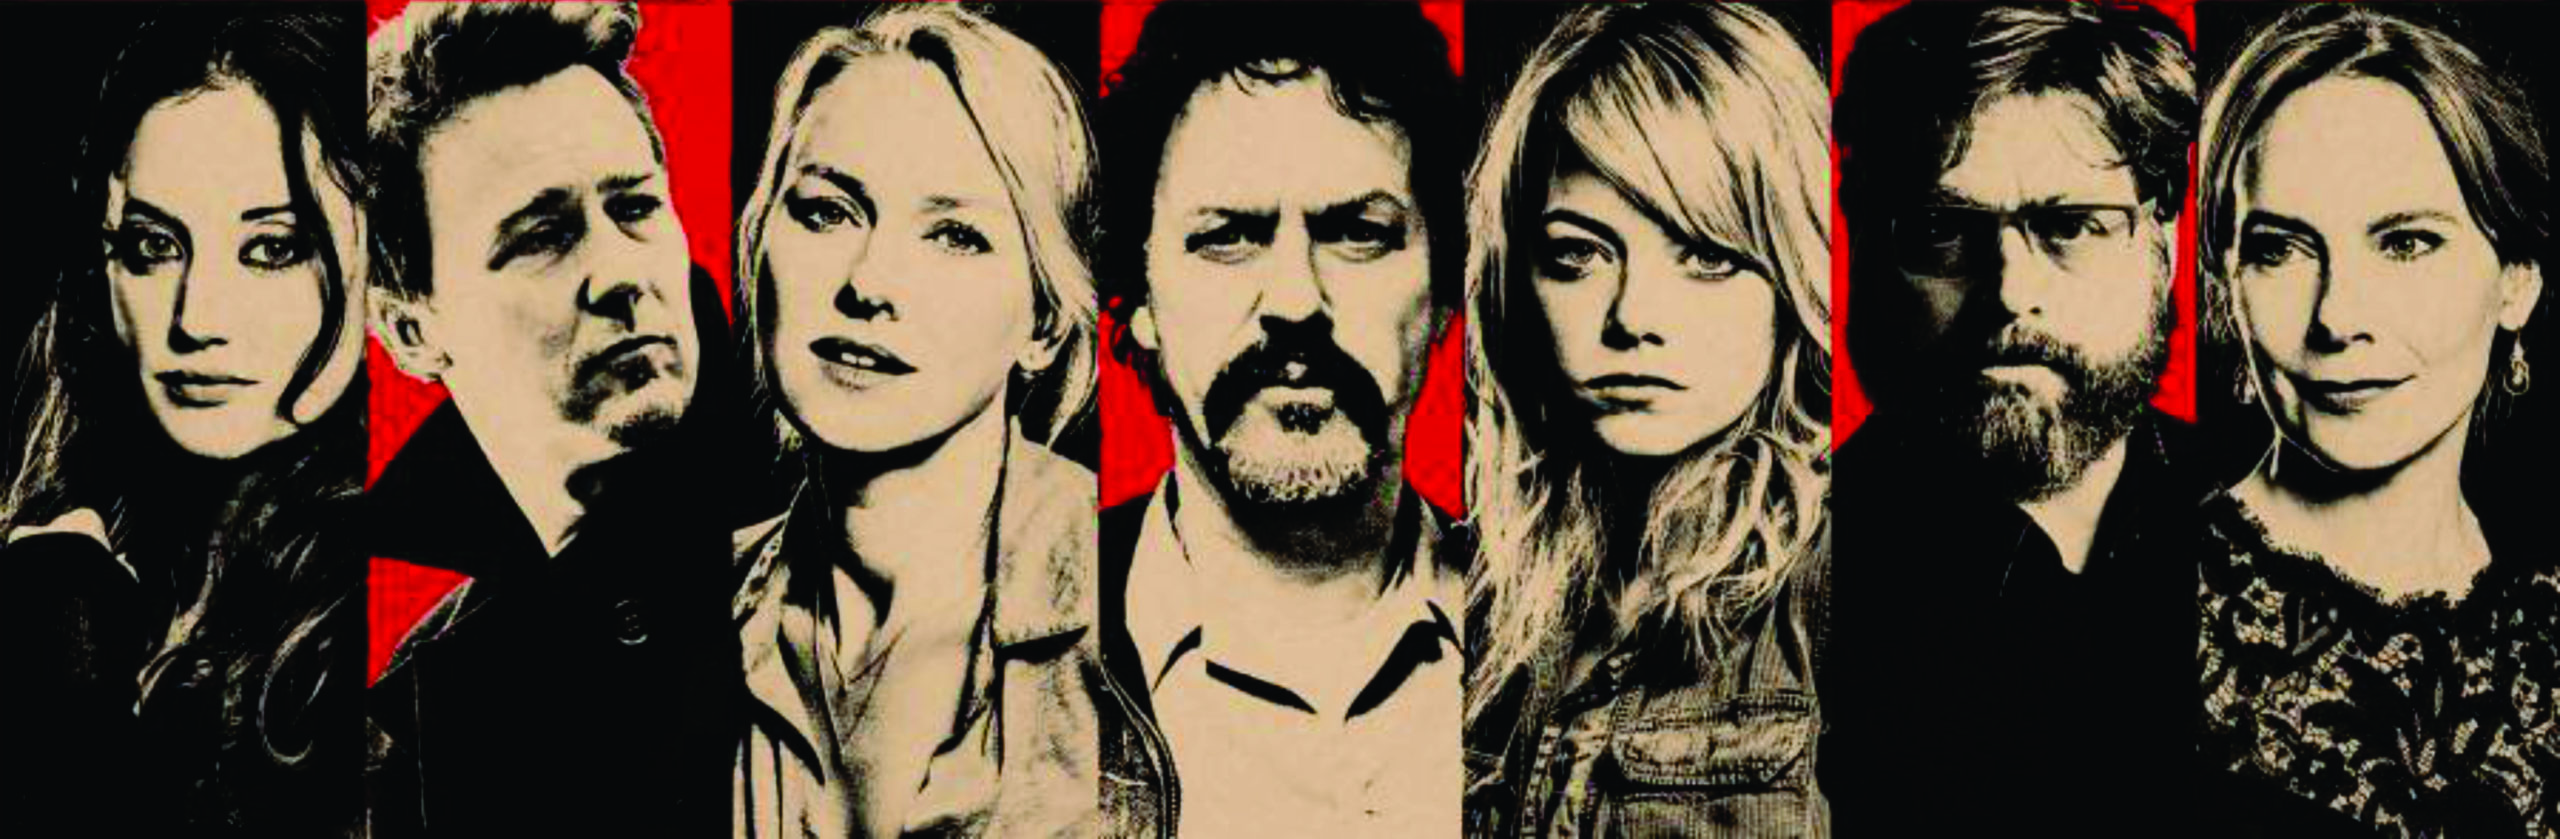 the red poster of Birdman